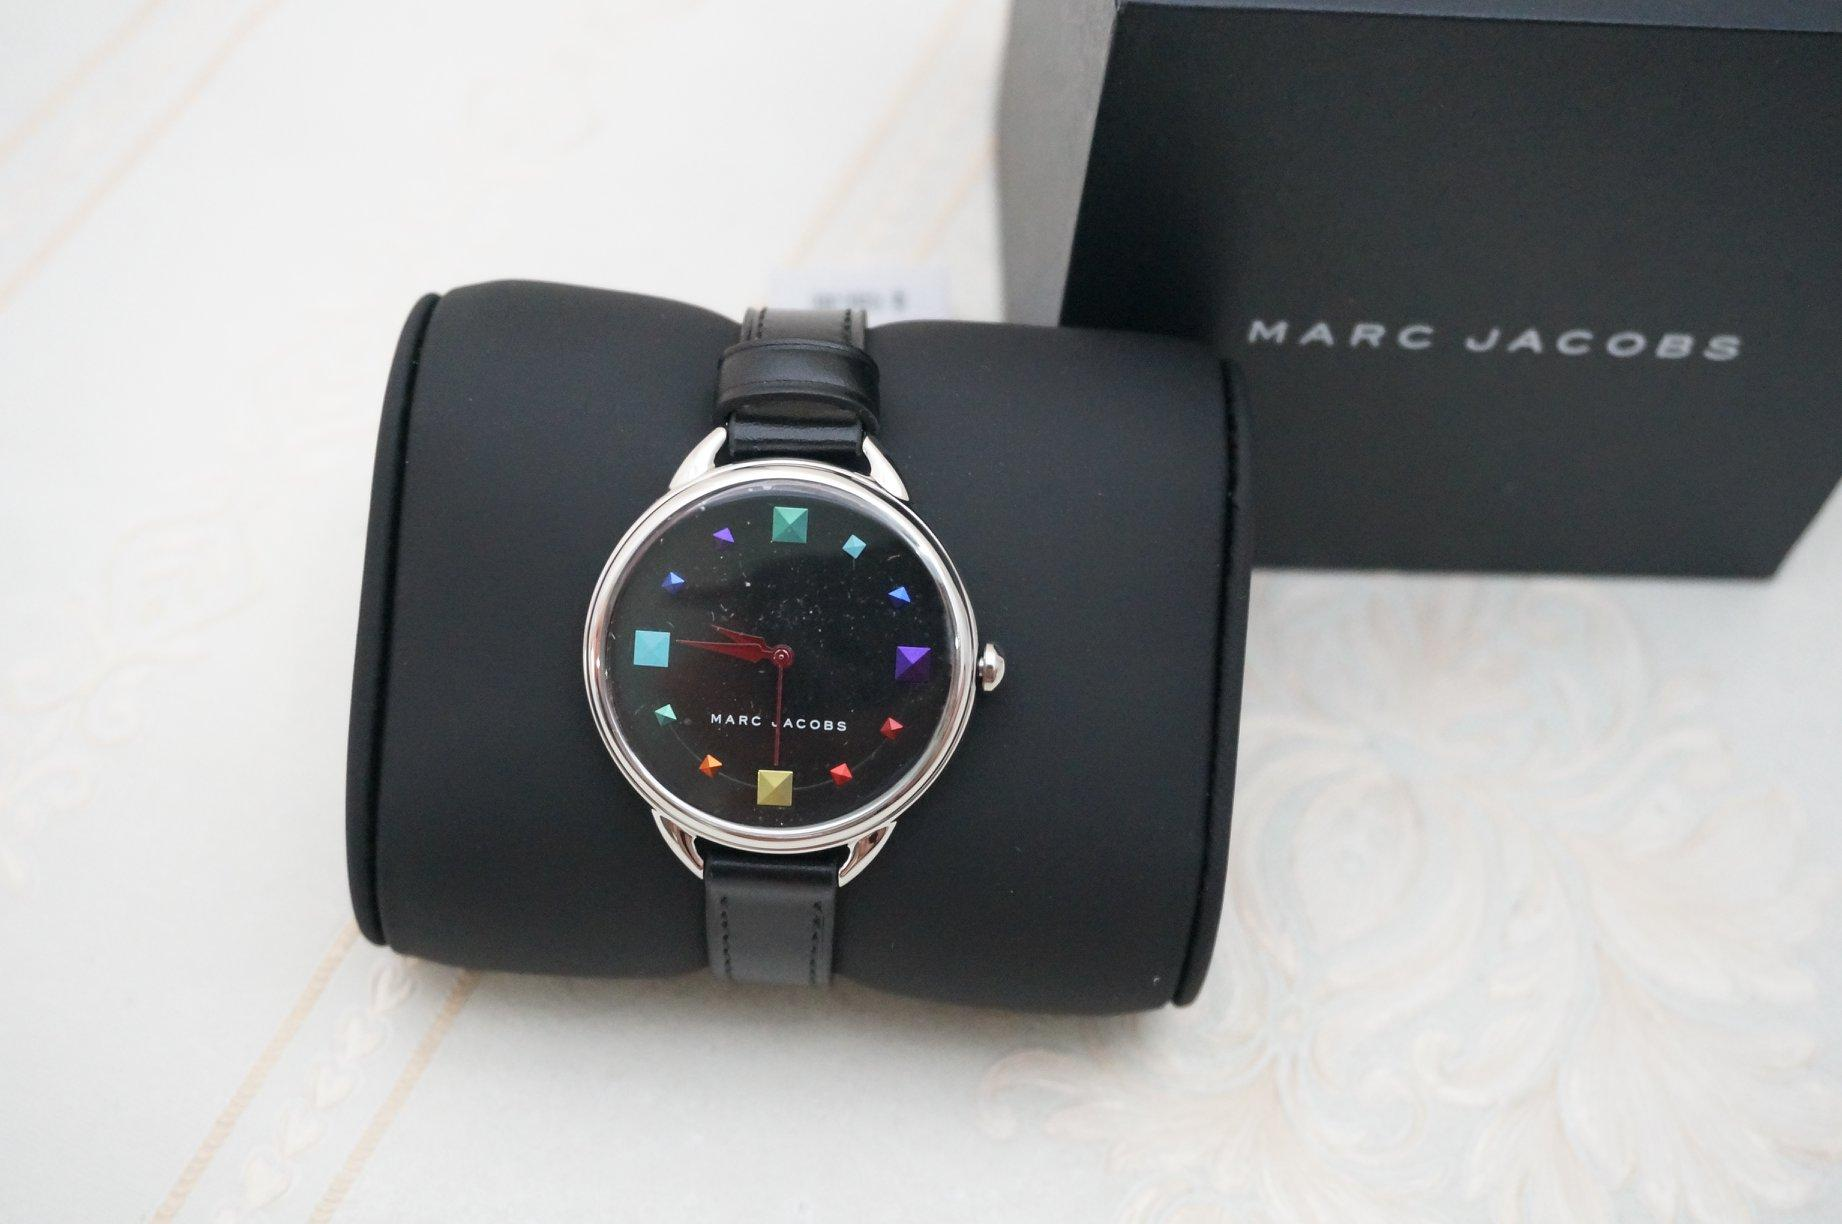 MARC JACOBS WATCH 1589